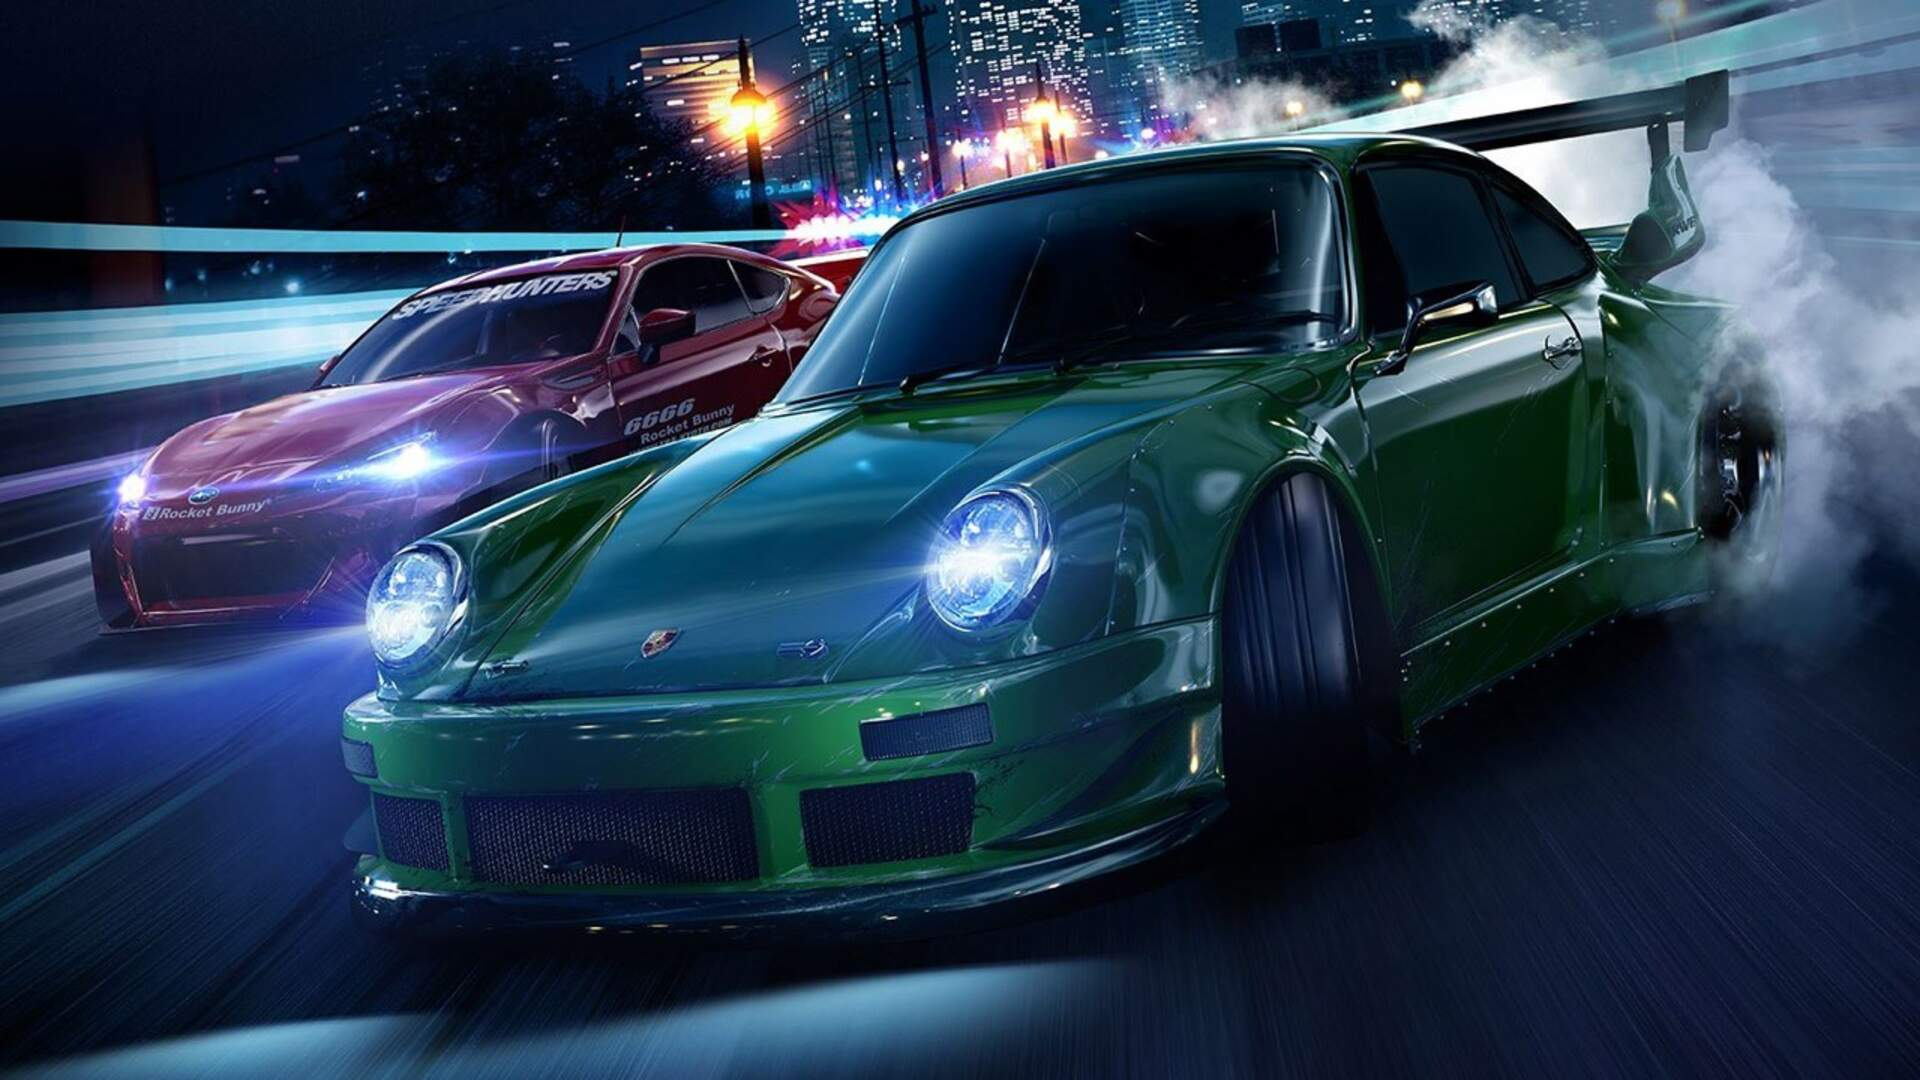 EA Offers a Status Update on New Need for Speed and Plants vs Zombies Games